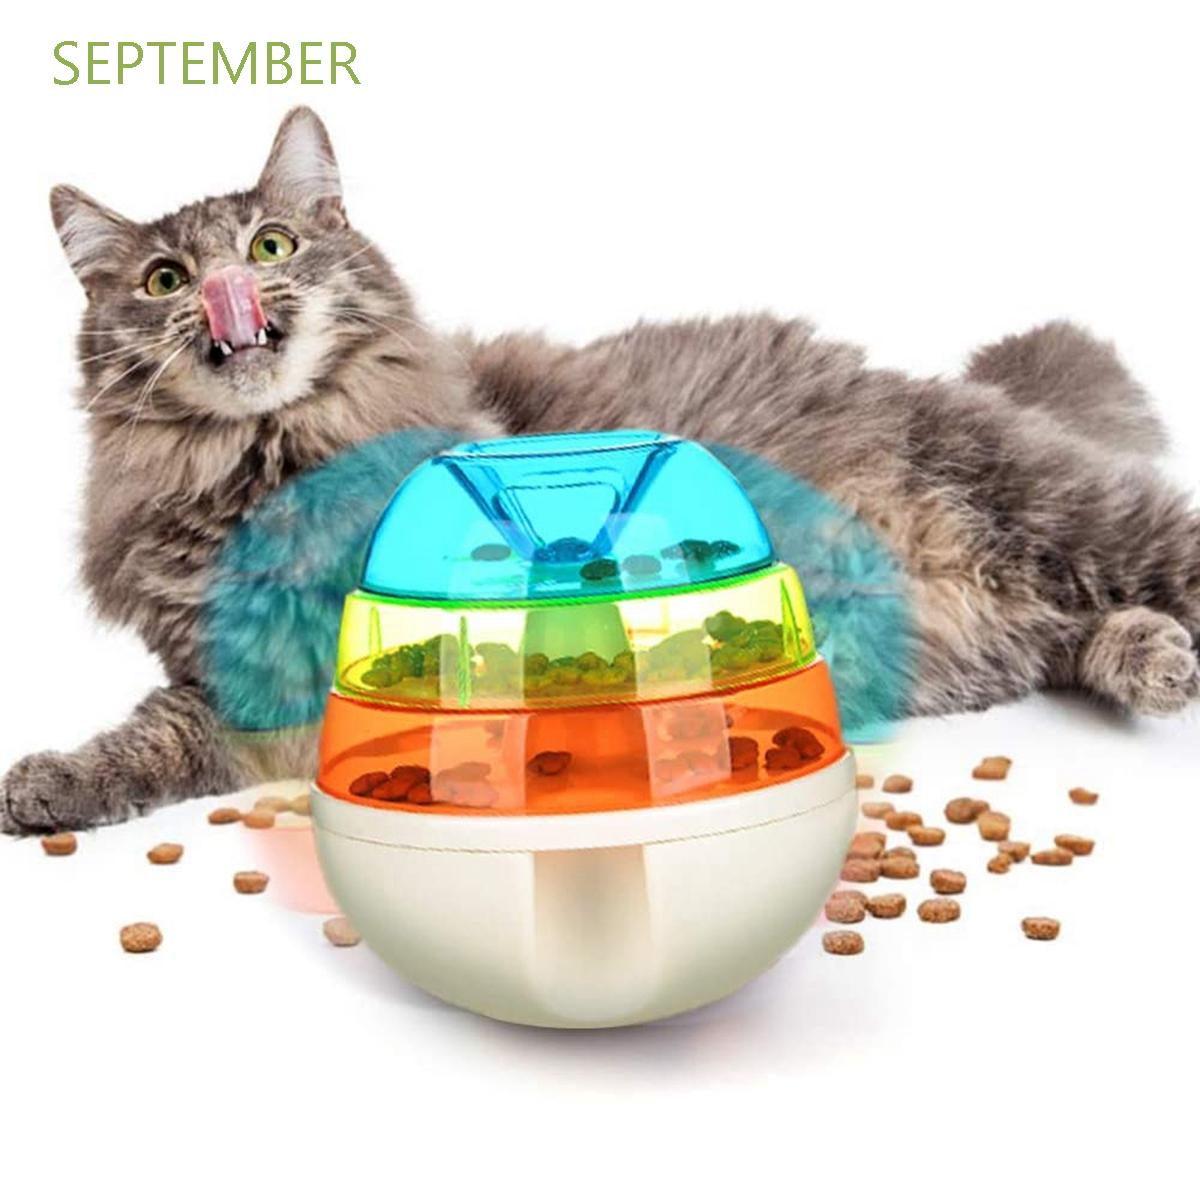 September Funny Treat Toys Cat Food Dispenser Food Leaking Ball Puzzle Interactive Rainbow Slow Feeder Dog Pet Tumbler Rainbow Shopee Singapore